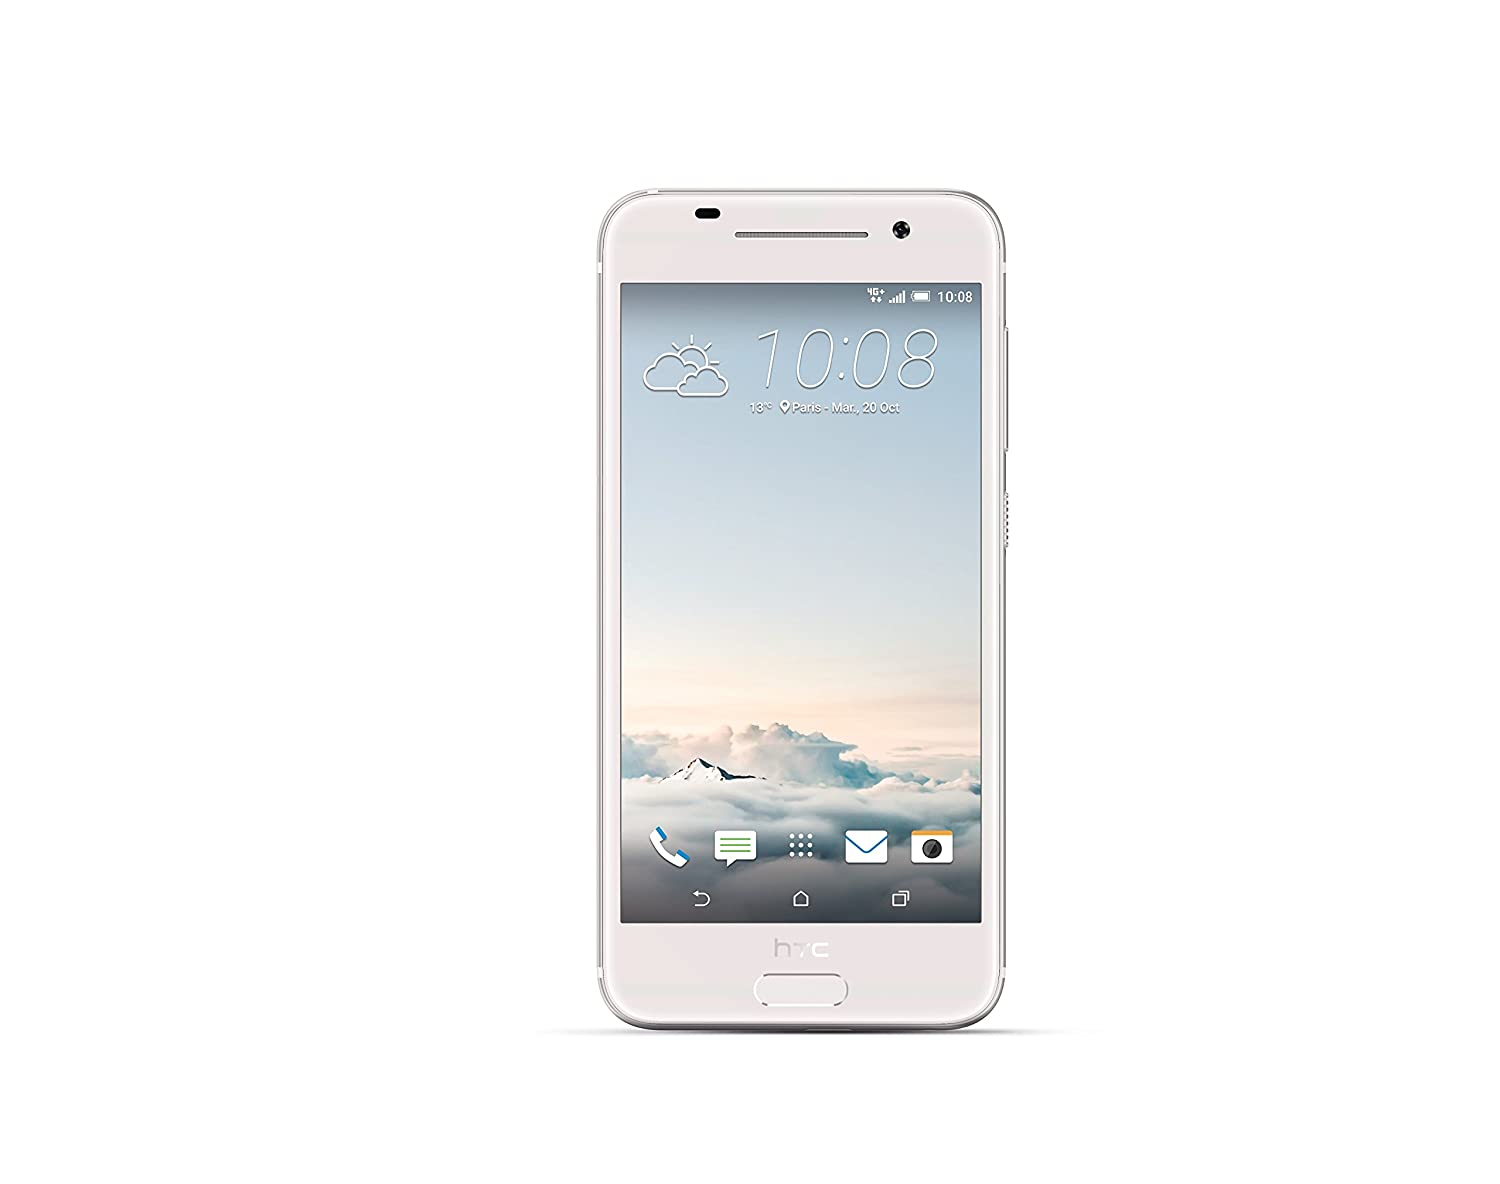 HTC A9 - Smartphone Libre (Qualcomm Snapdragon 617, Octa Core, cámara de 13 MP, Bluetooth 4.1), Color Plateado